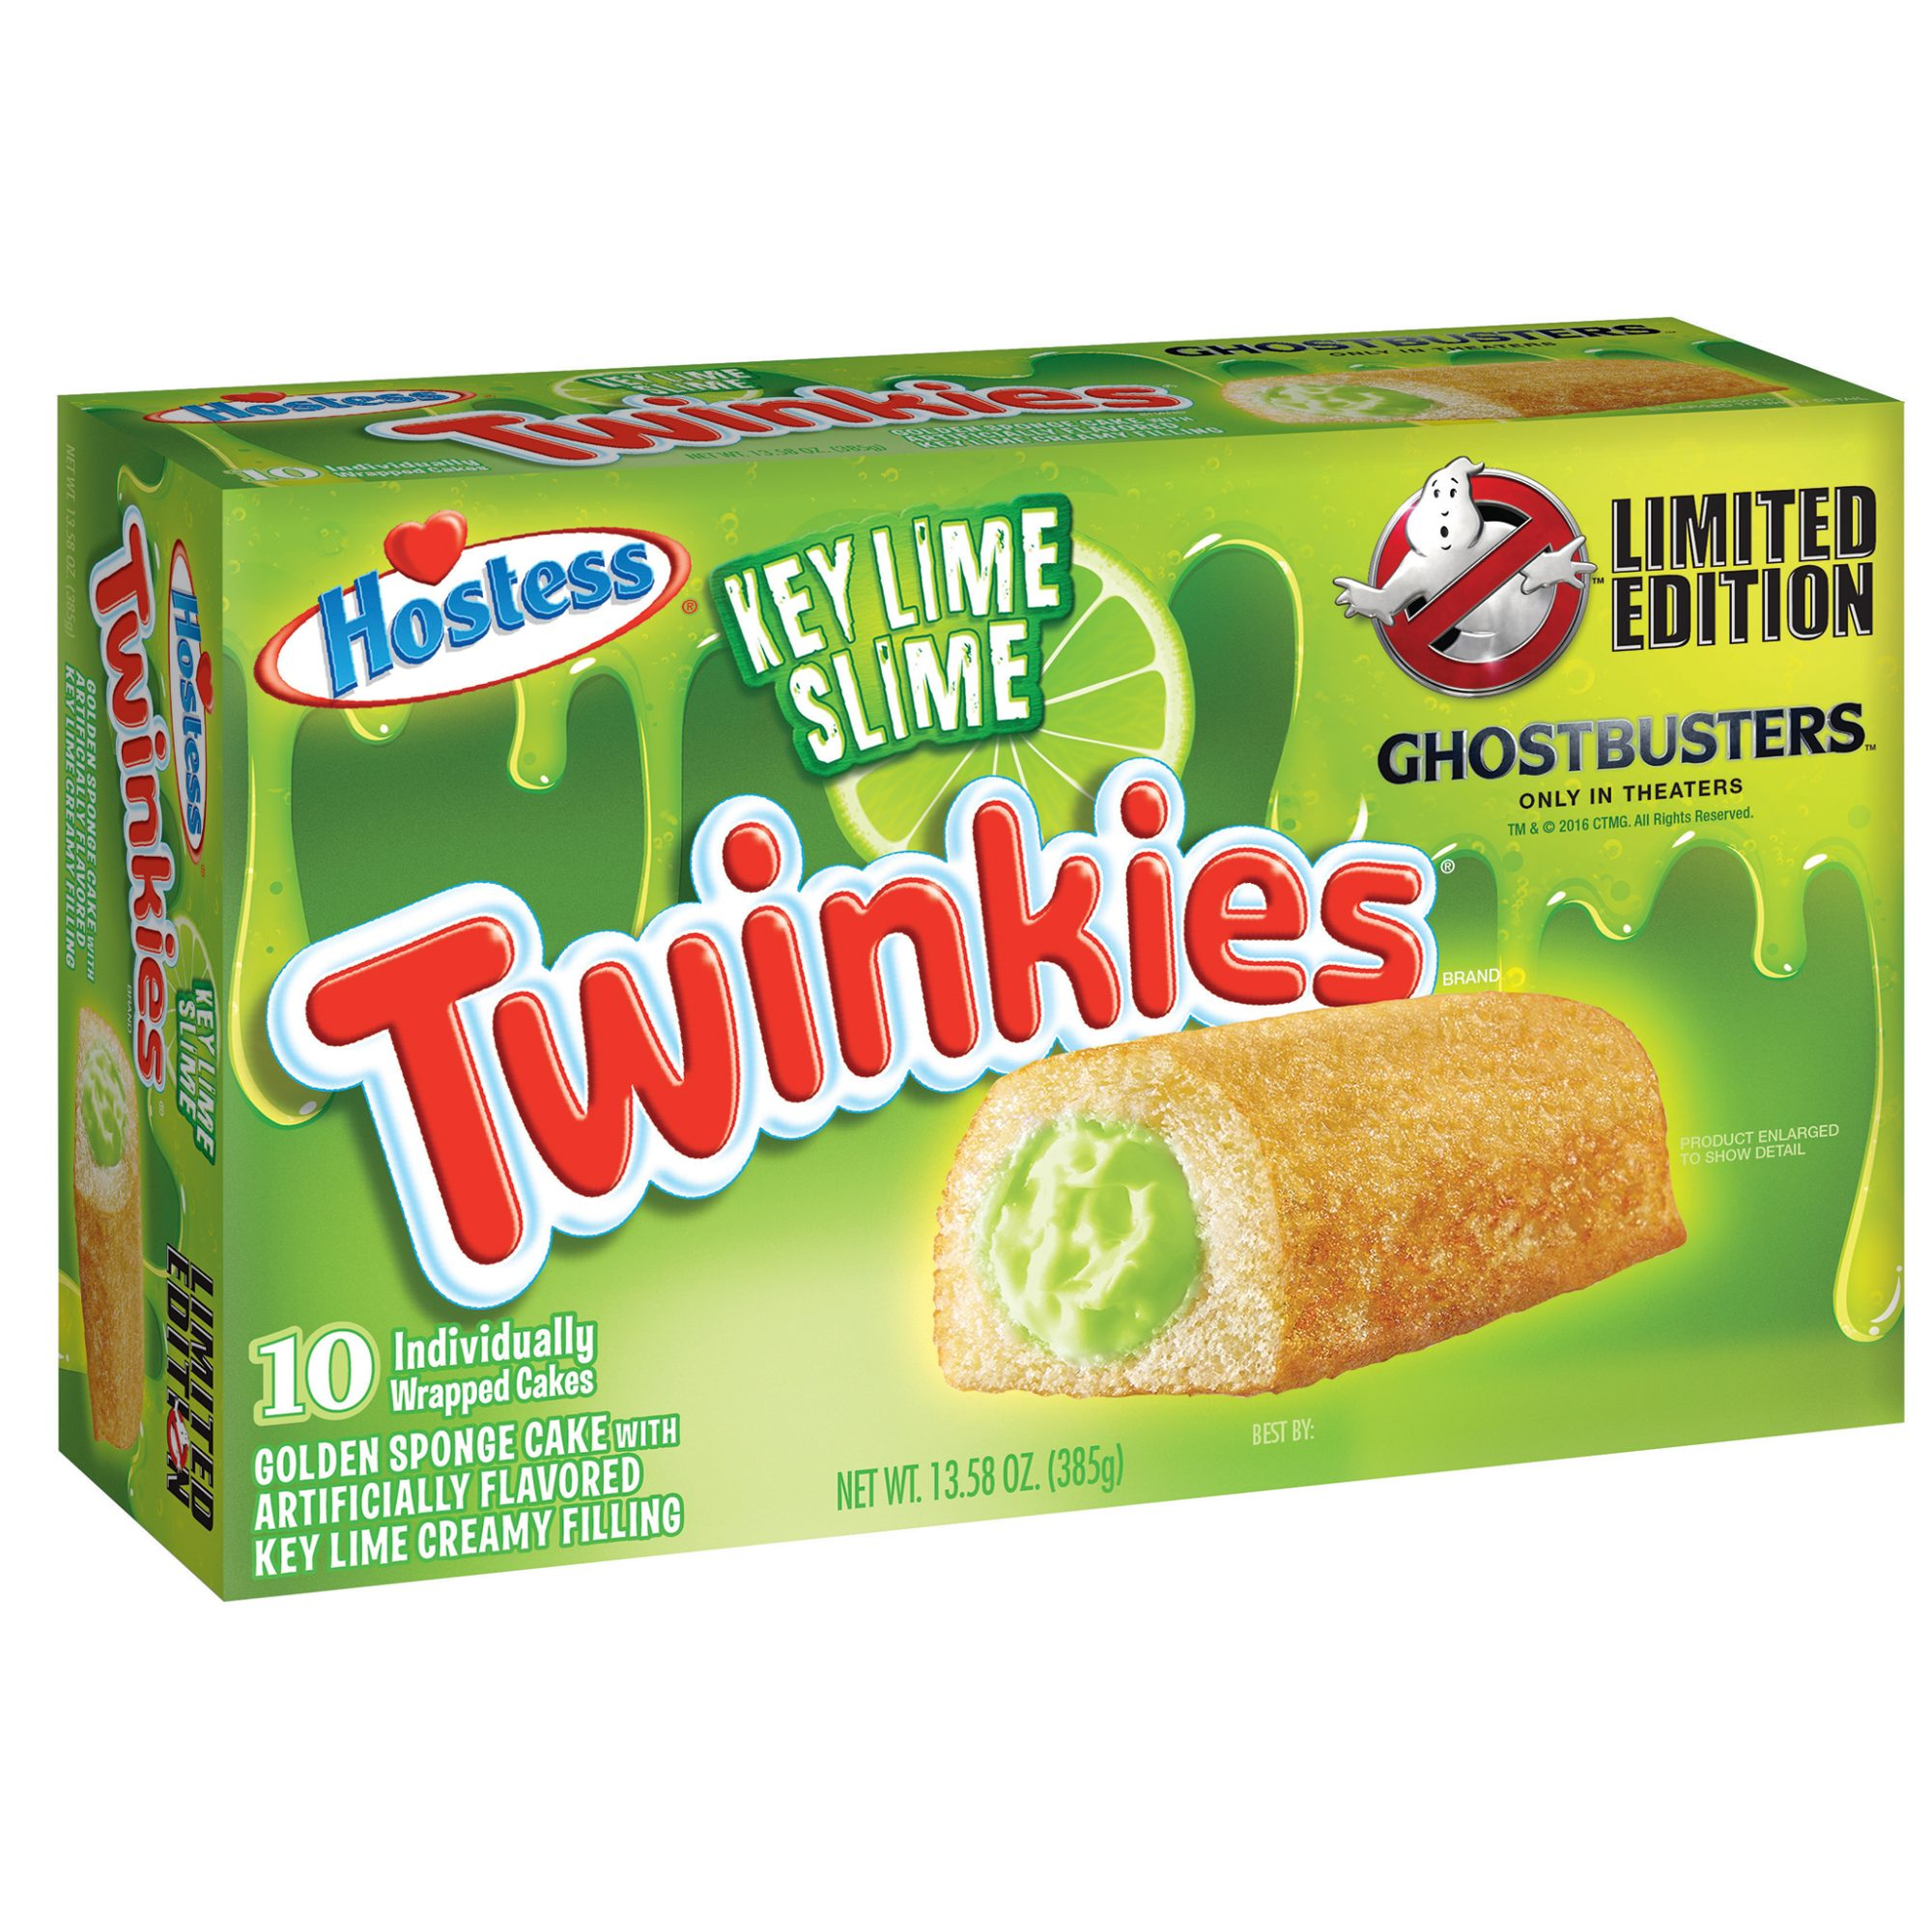 Twinkies, Ghostbusters, Hostess